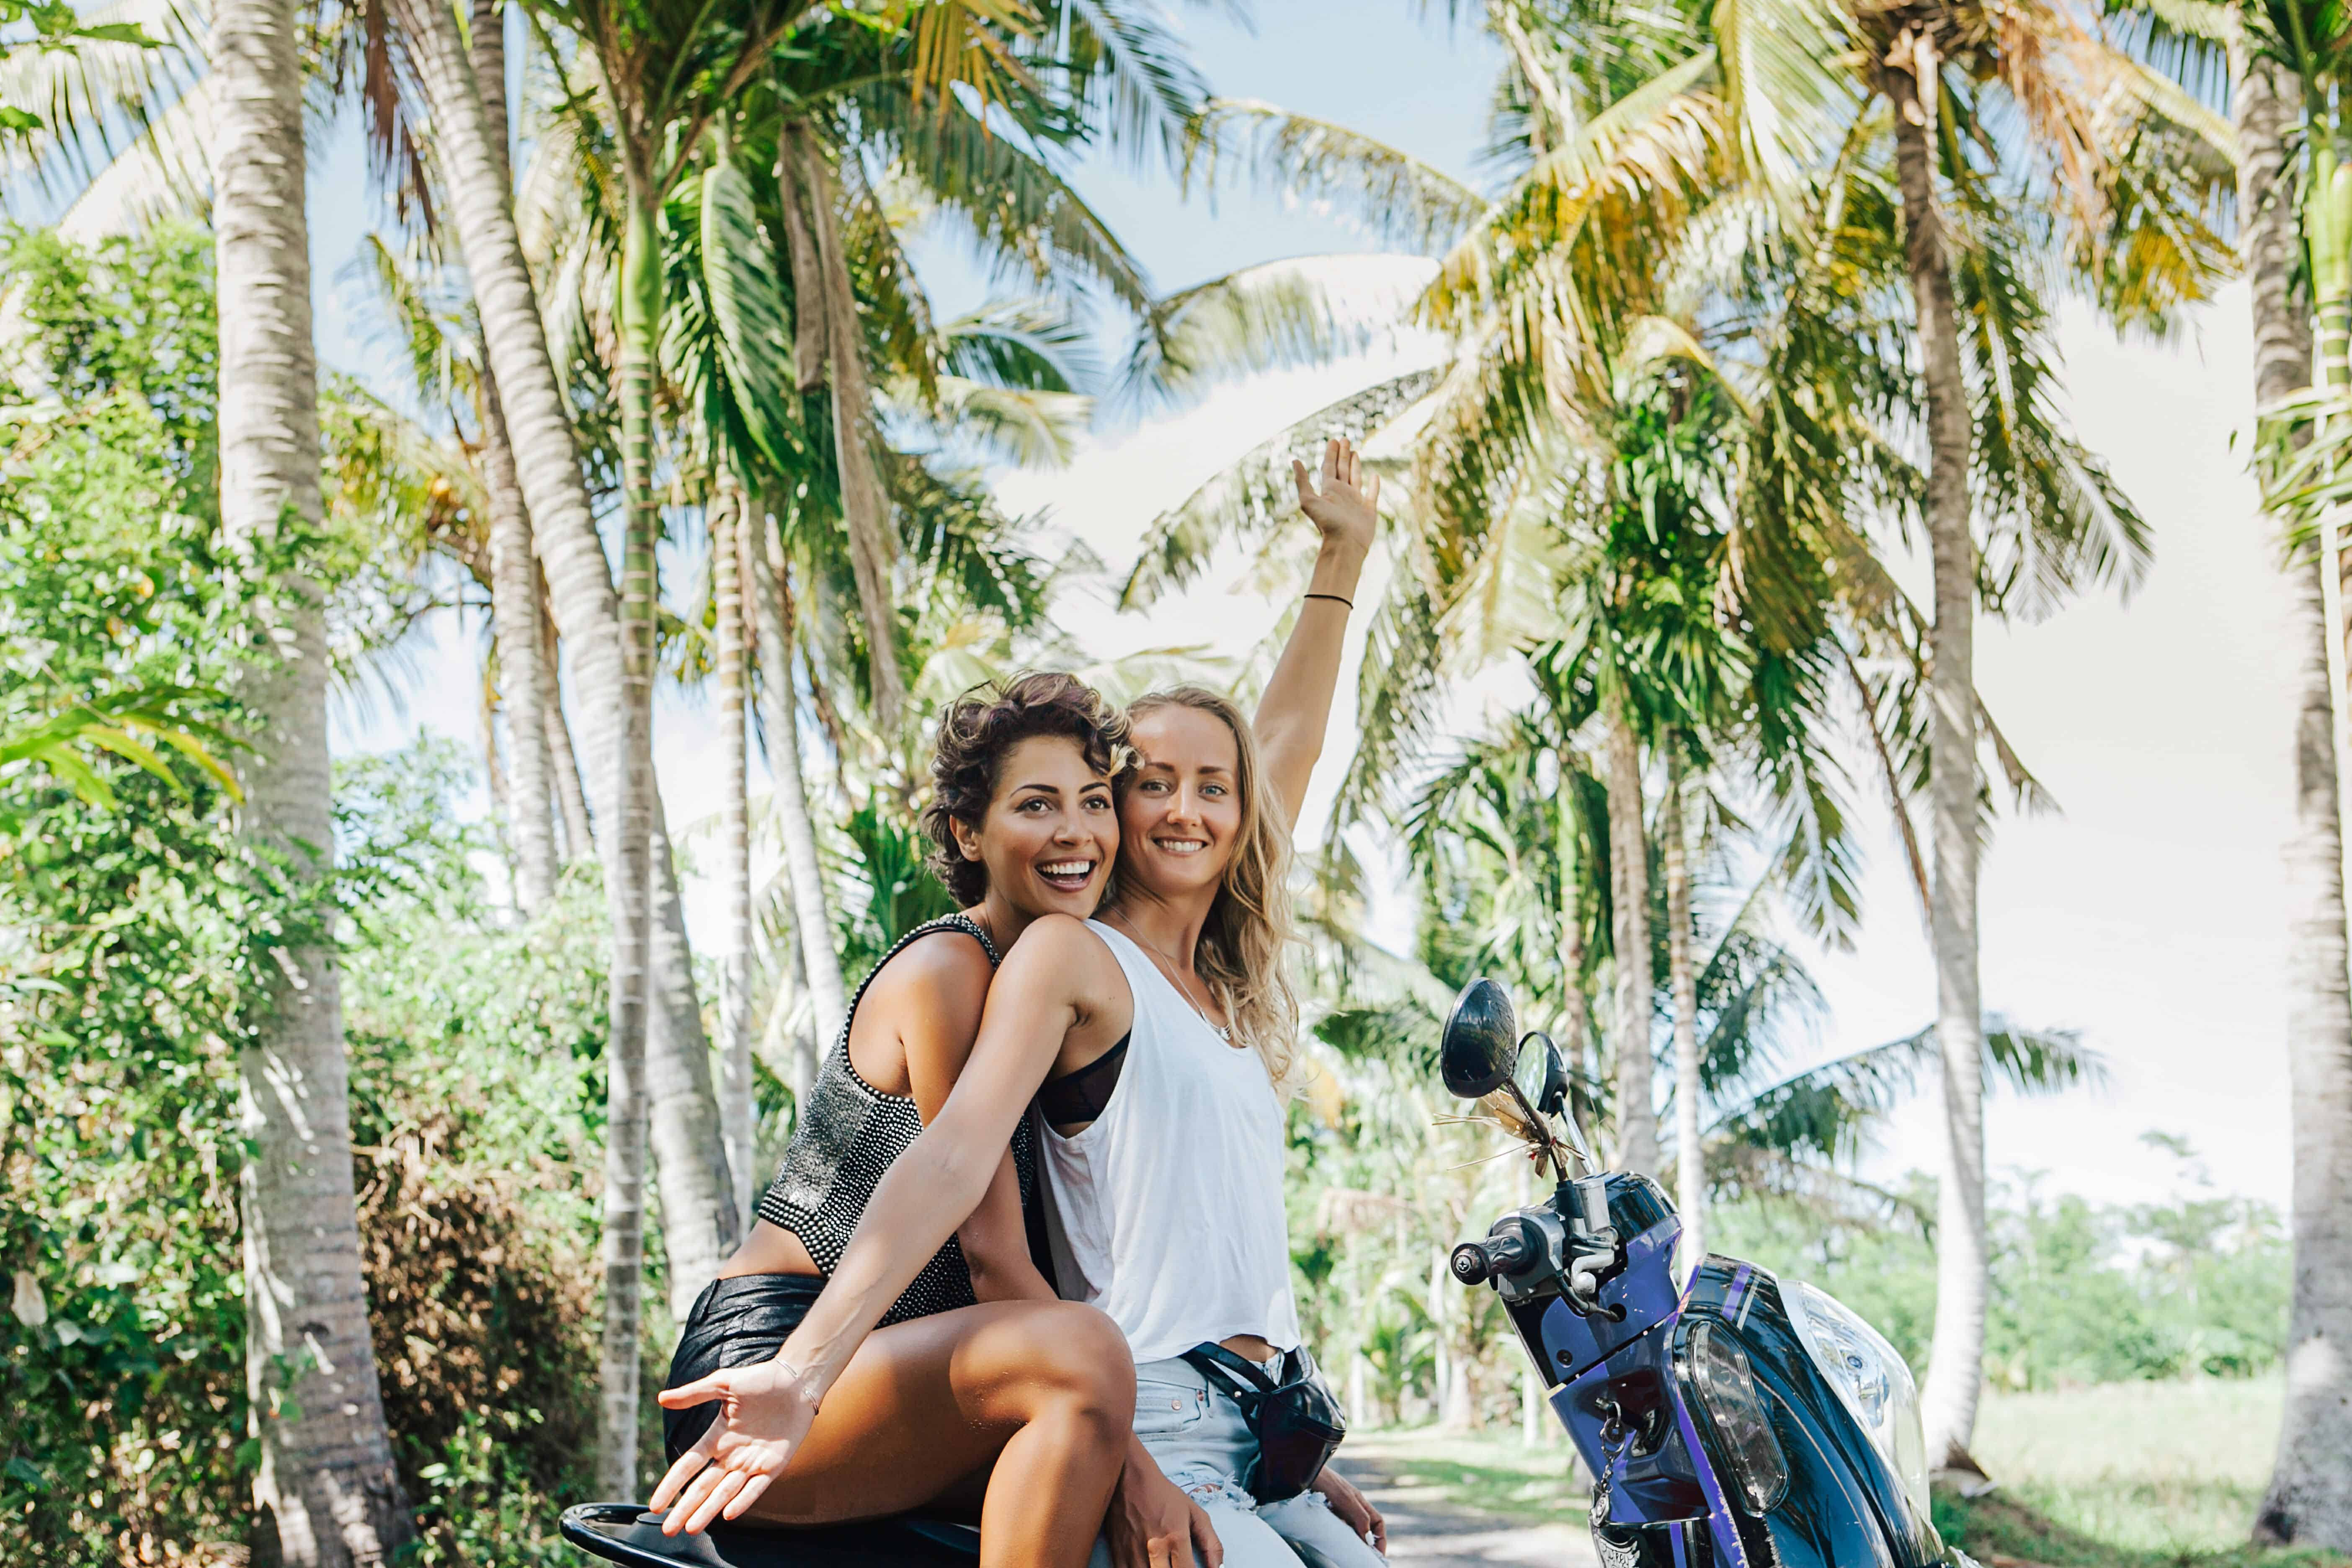 Out Of Office gay and lesbian LGBT travel